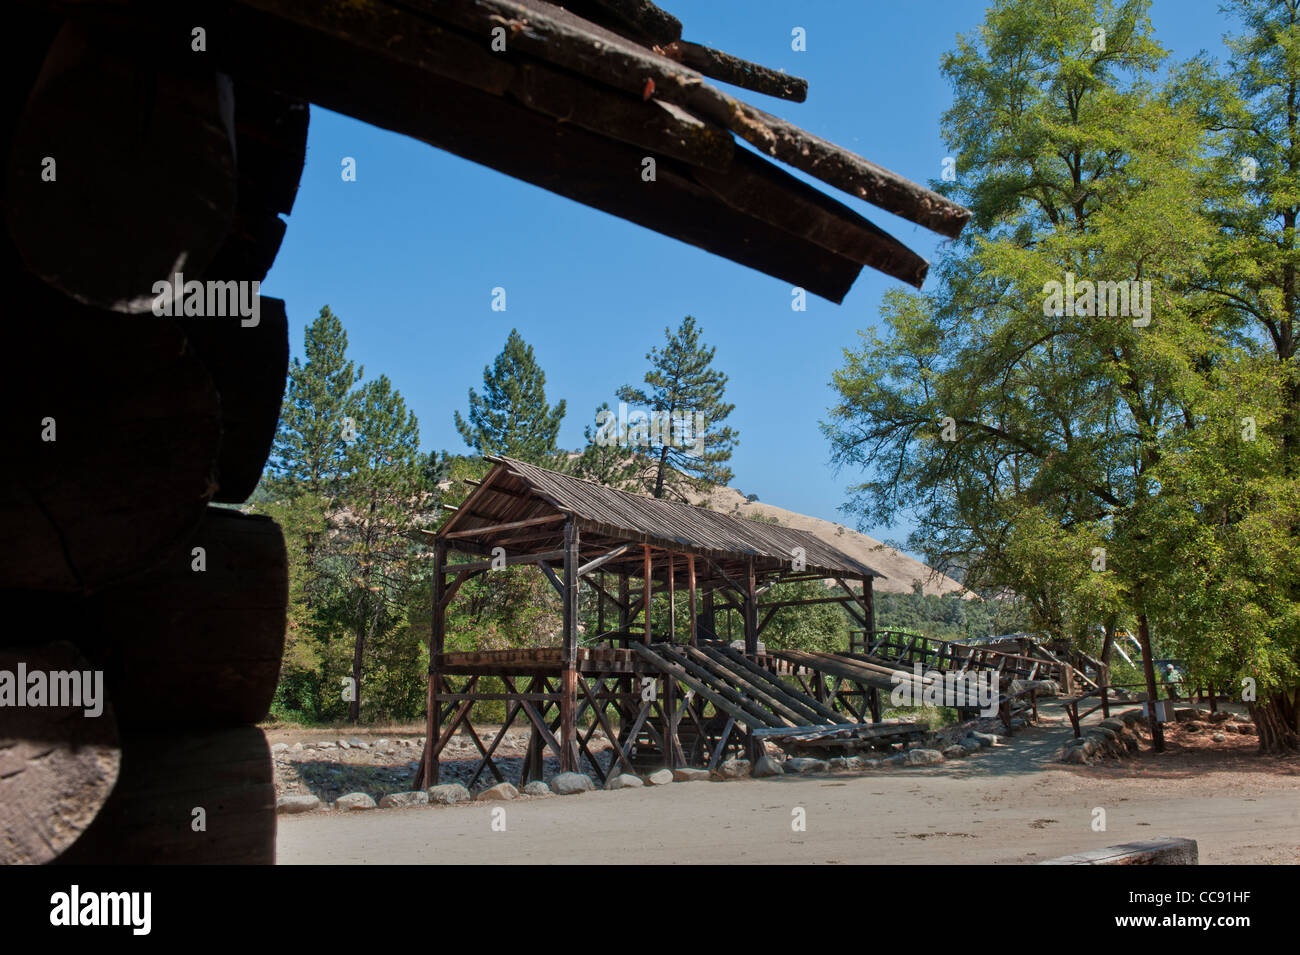 Replica of Sutters Mill, site of California's first Gold Discovery, in the Gold Country of Coloma California - Stock Image